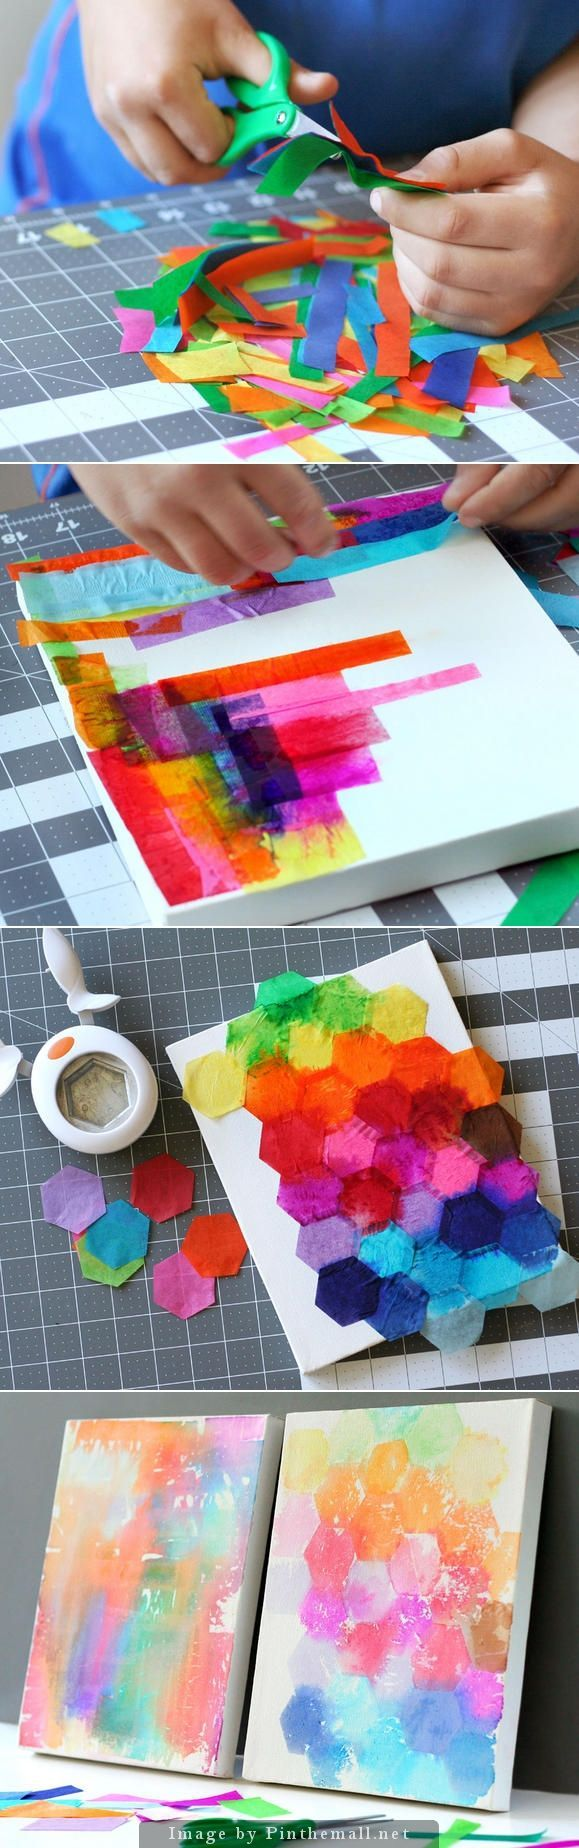 25 best ideas about painting canvas crafts on pinterest for Step by step canvas painting for kids